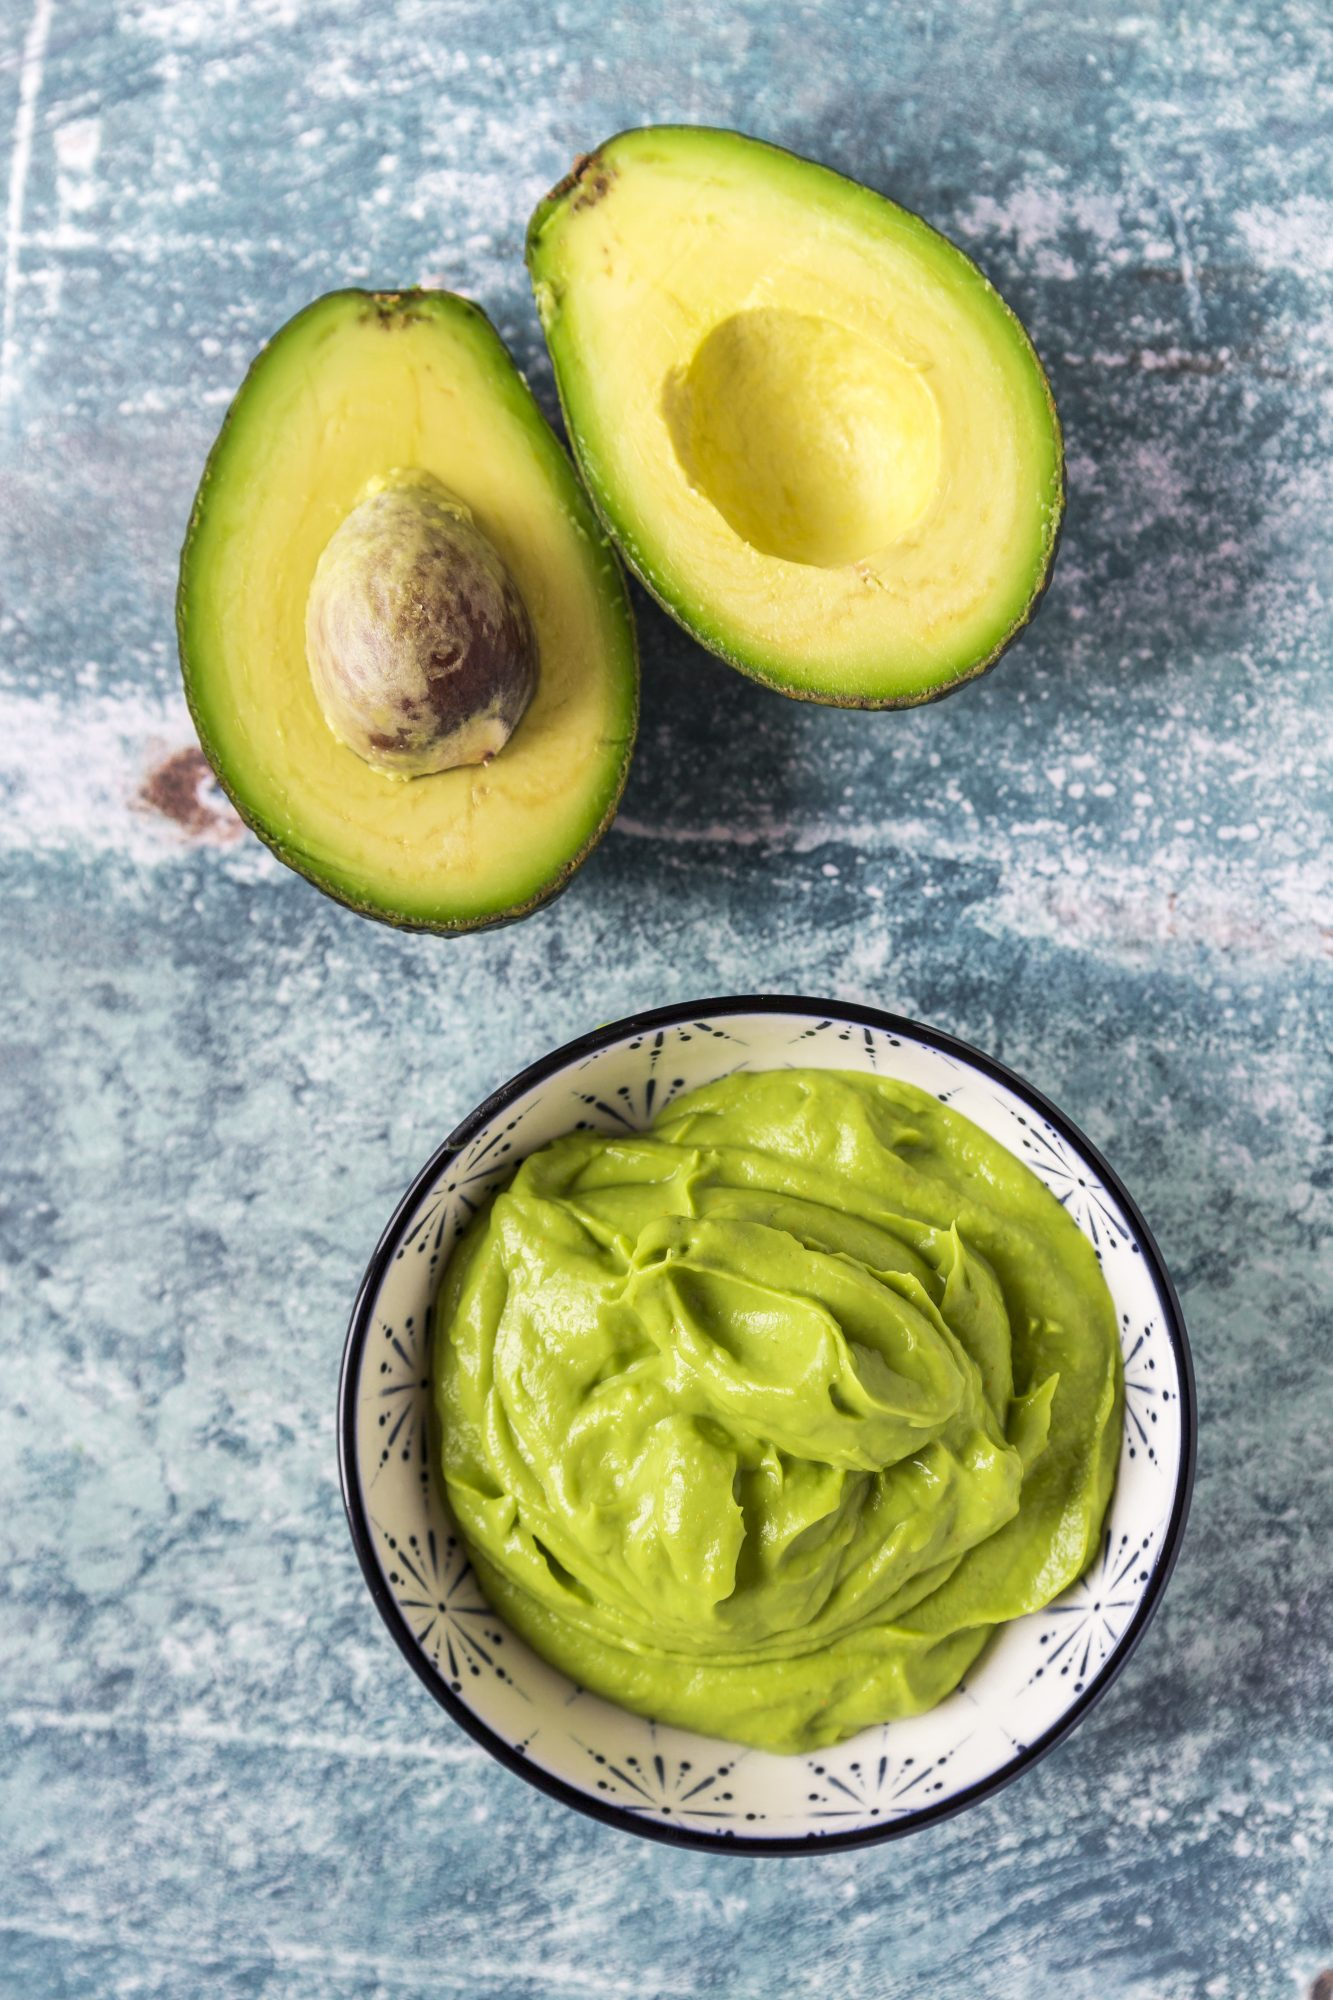 Yes, 'Diet' Avocados Are Now a Thing—Here's a Nutritionist's Take